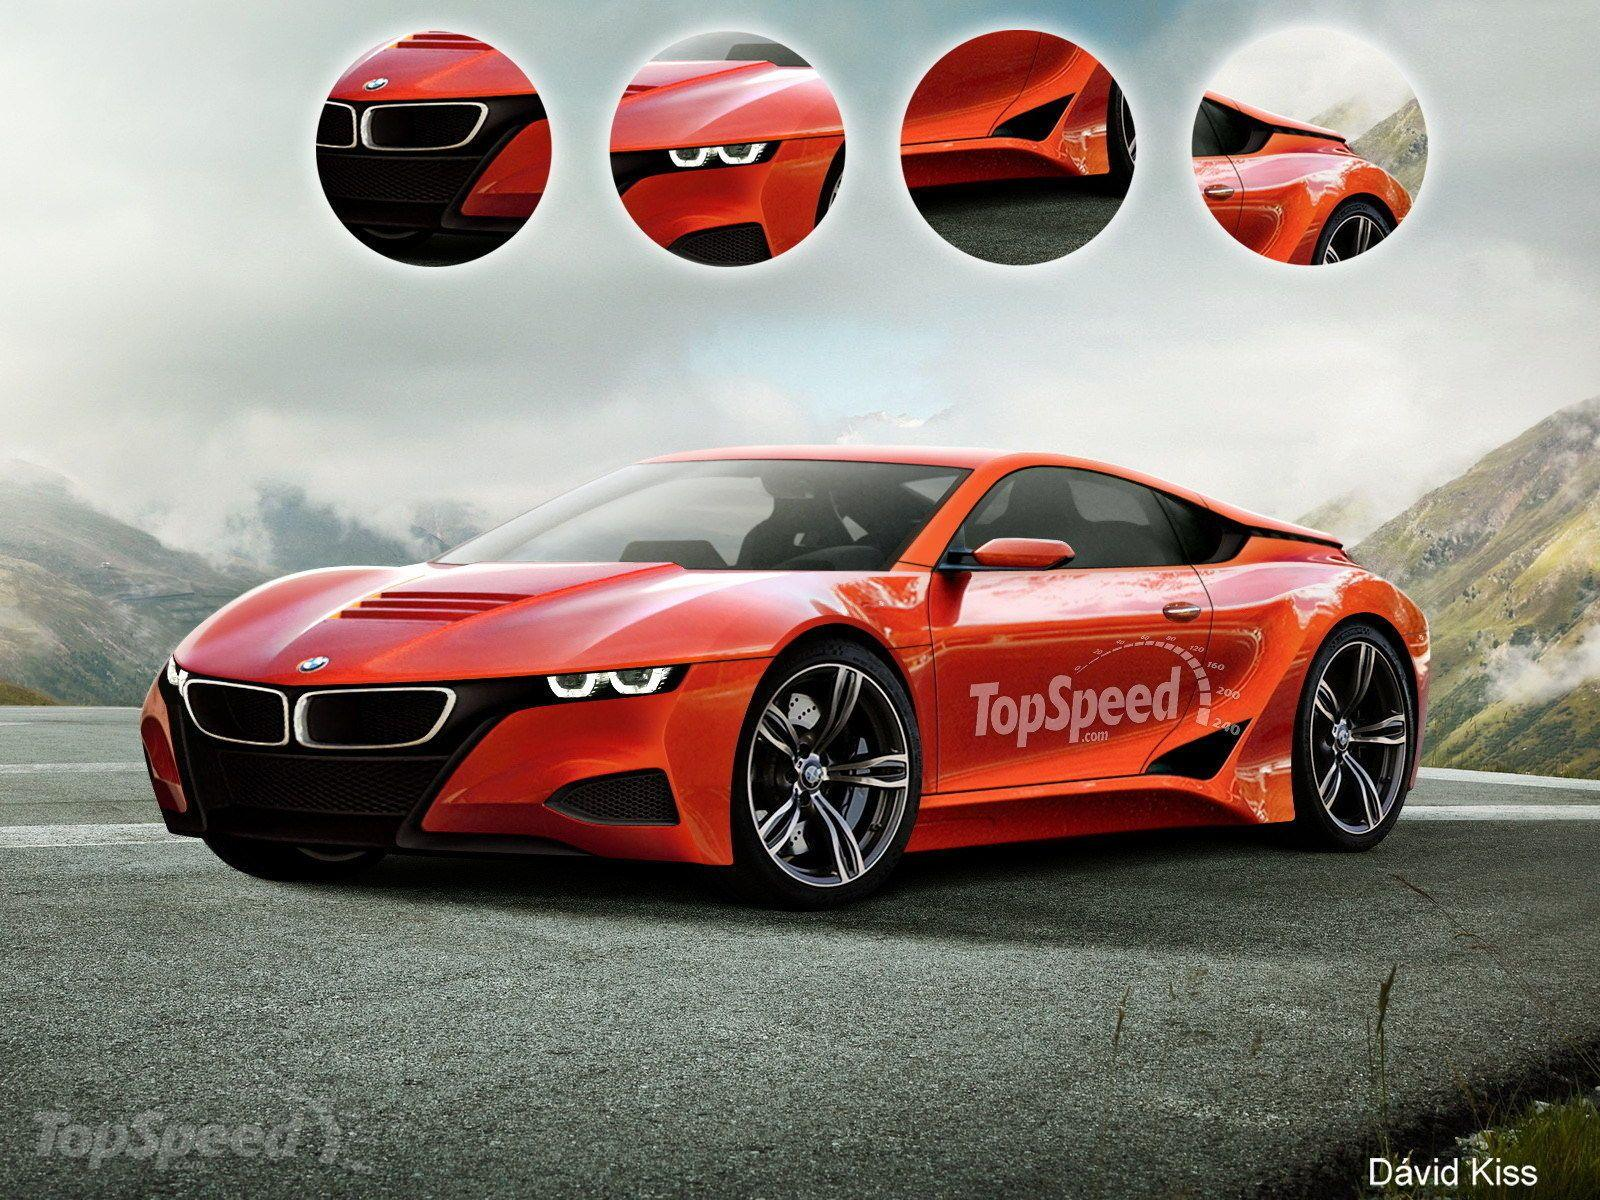 Rumor: BMW M8 Supercar with 630 hp coming in 2018?